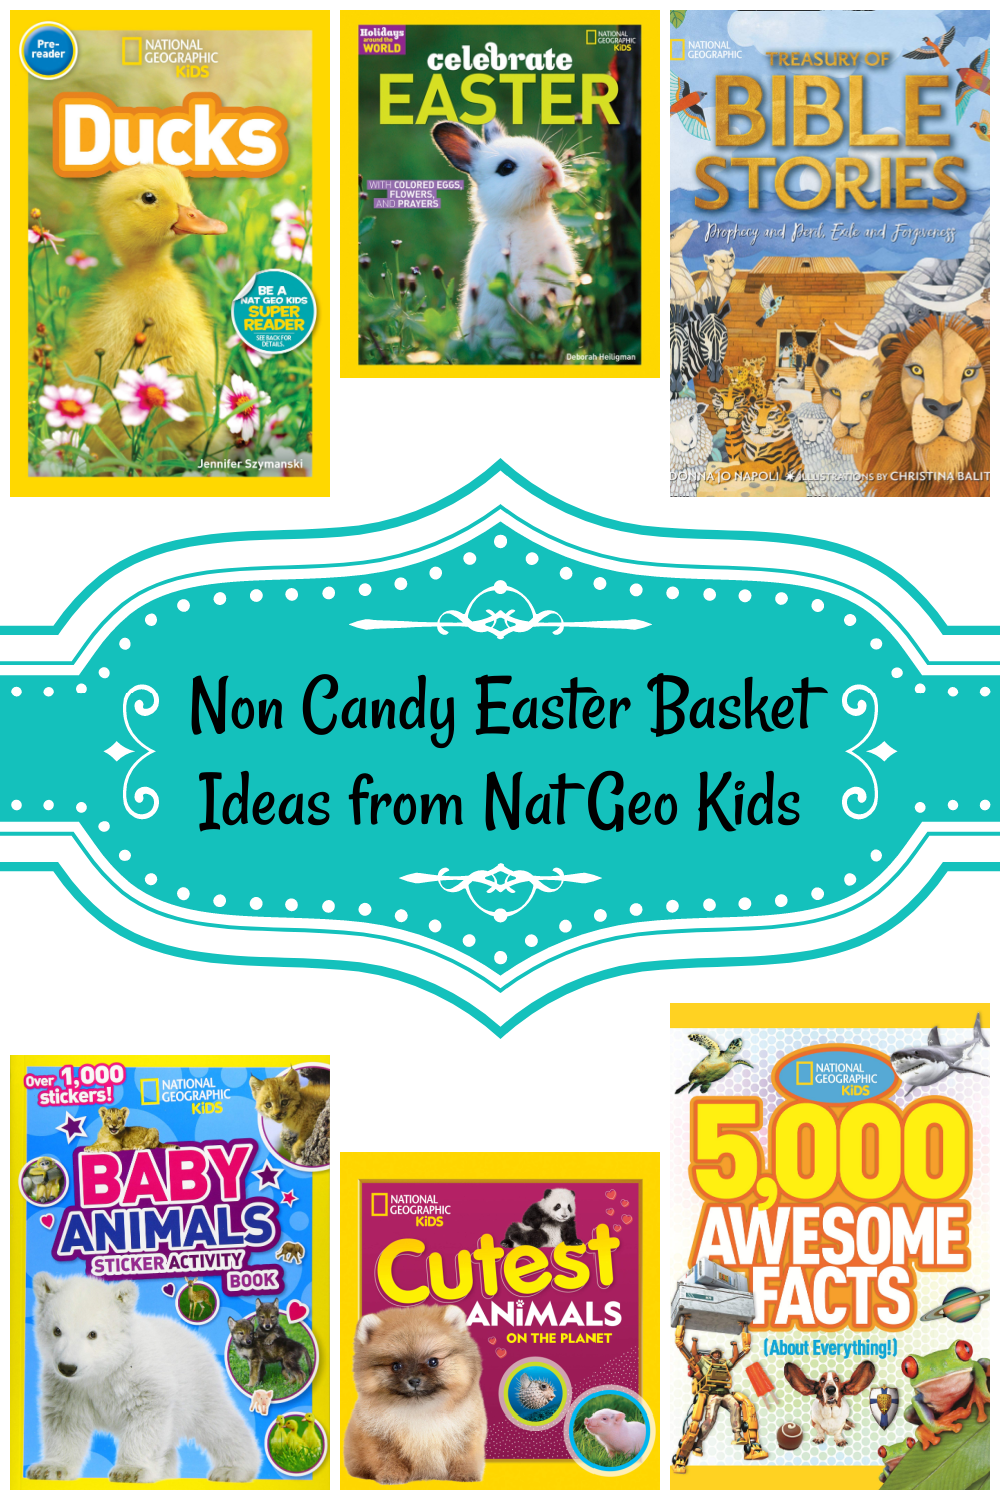 Non Candy Easter Basket Ideas from Nat Geo Kids